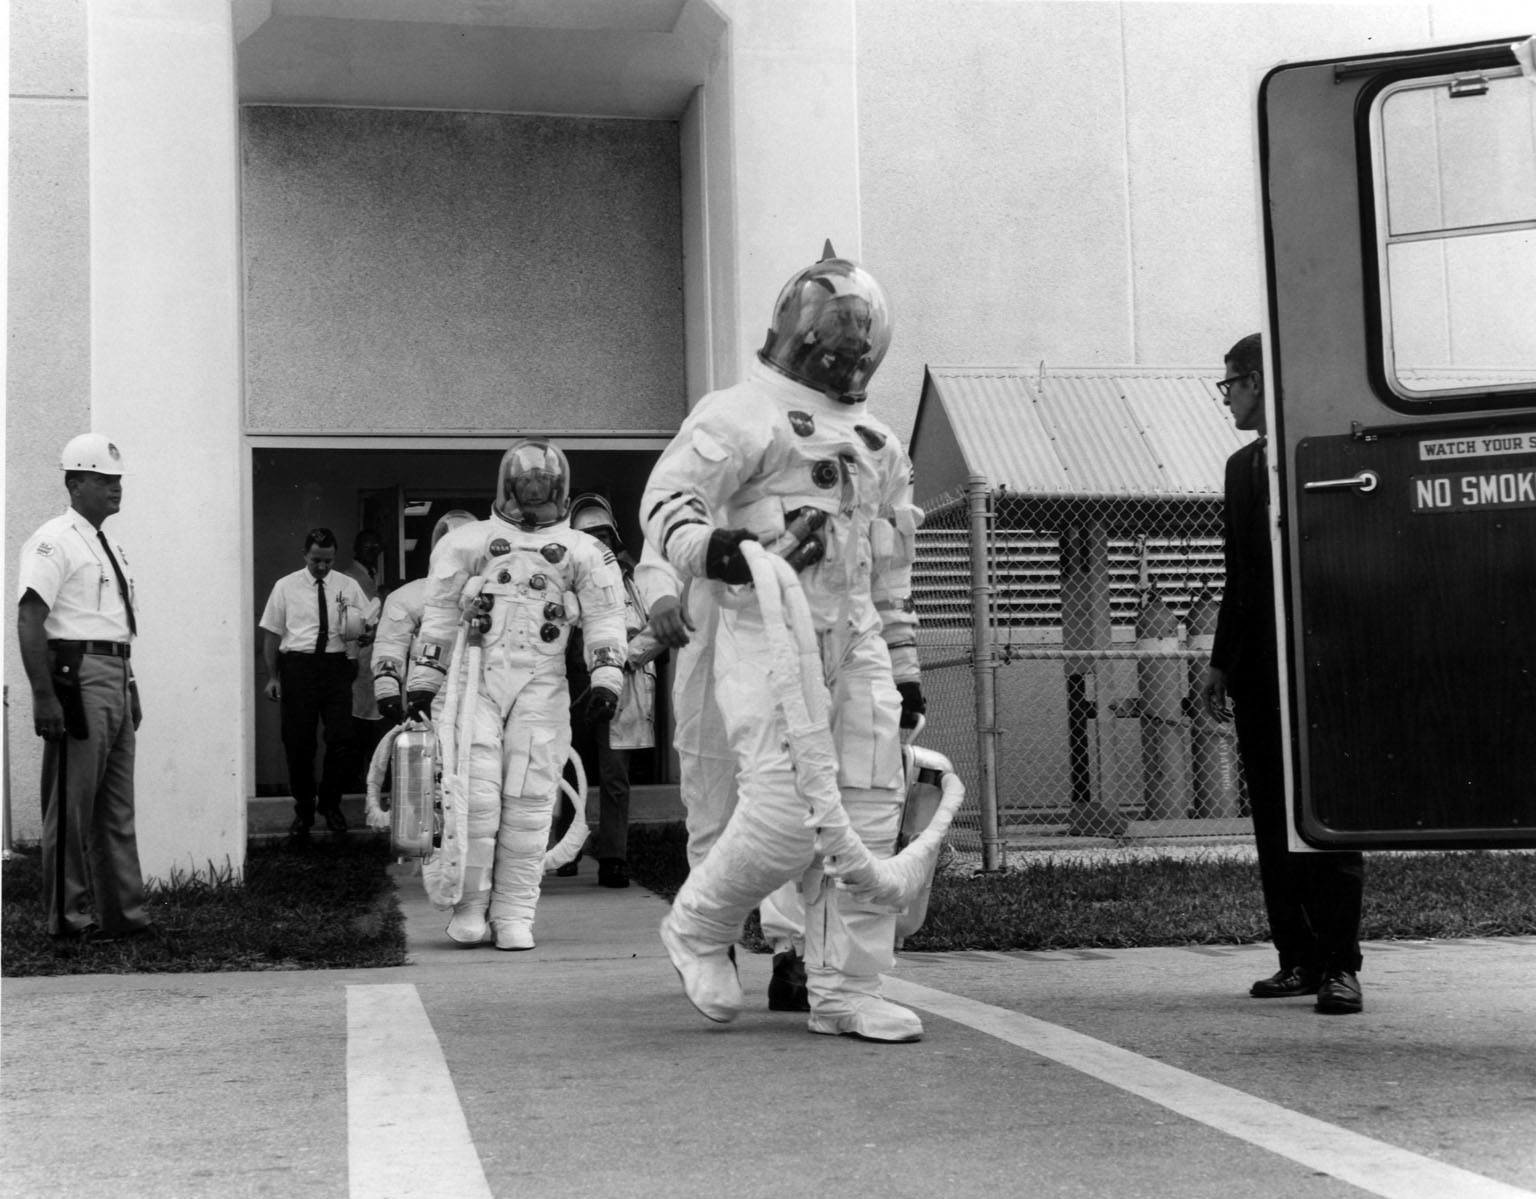 KENNEDY SPACE CENTER, FLA. -- Apollo 7 prime crew members, front to back, Donn F. Eisele, Walter M. Schirra Jr. and Walter Cunningham, leave the Kennedy Space Center's Manned Spacecraft Operations Building for a 20-minute ride in a transfer van to Cape Kennedy's Launch Complex 34, where they participated in a Space Vehicle Emergency Egress Test. The trio will pilot the National Aeronautics and Space Administration's first manned Apollo mission.